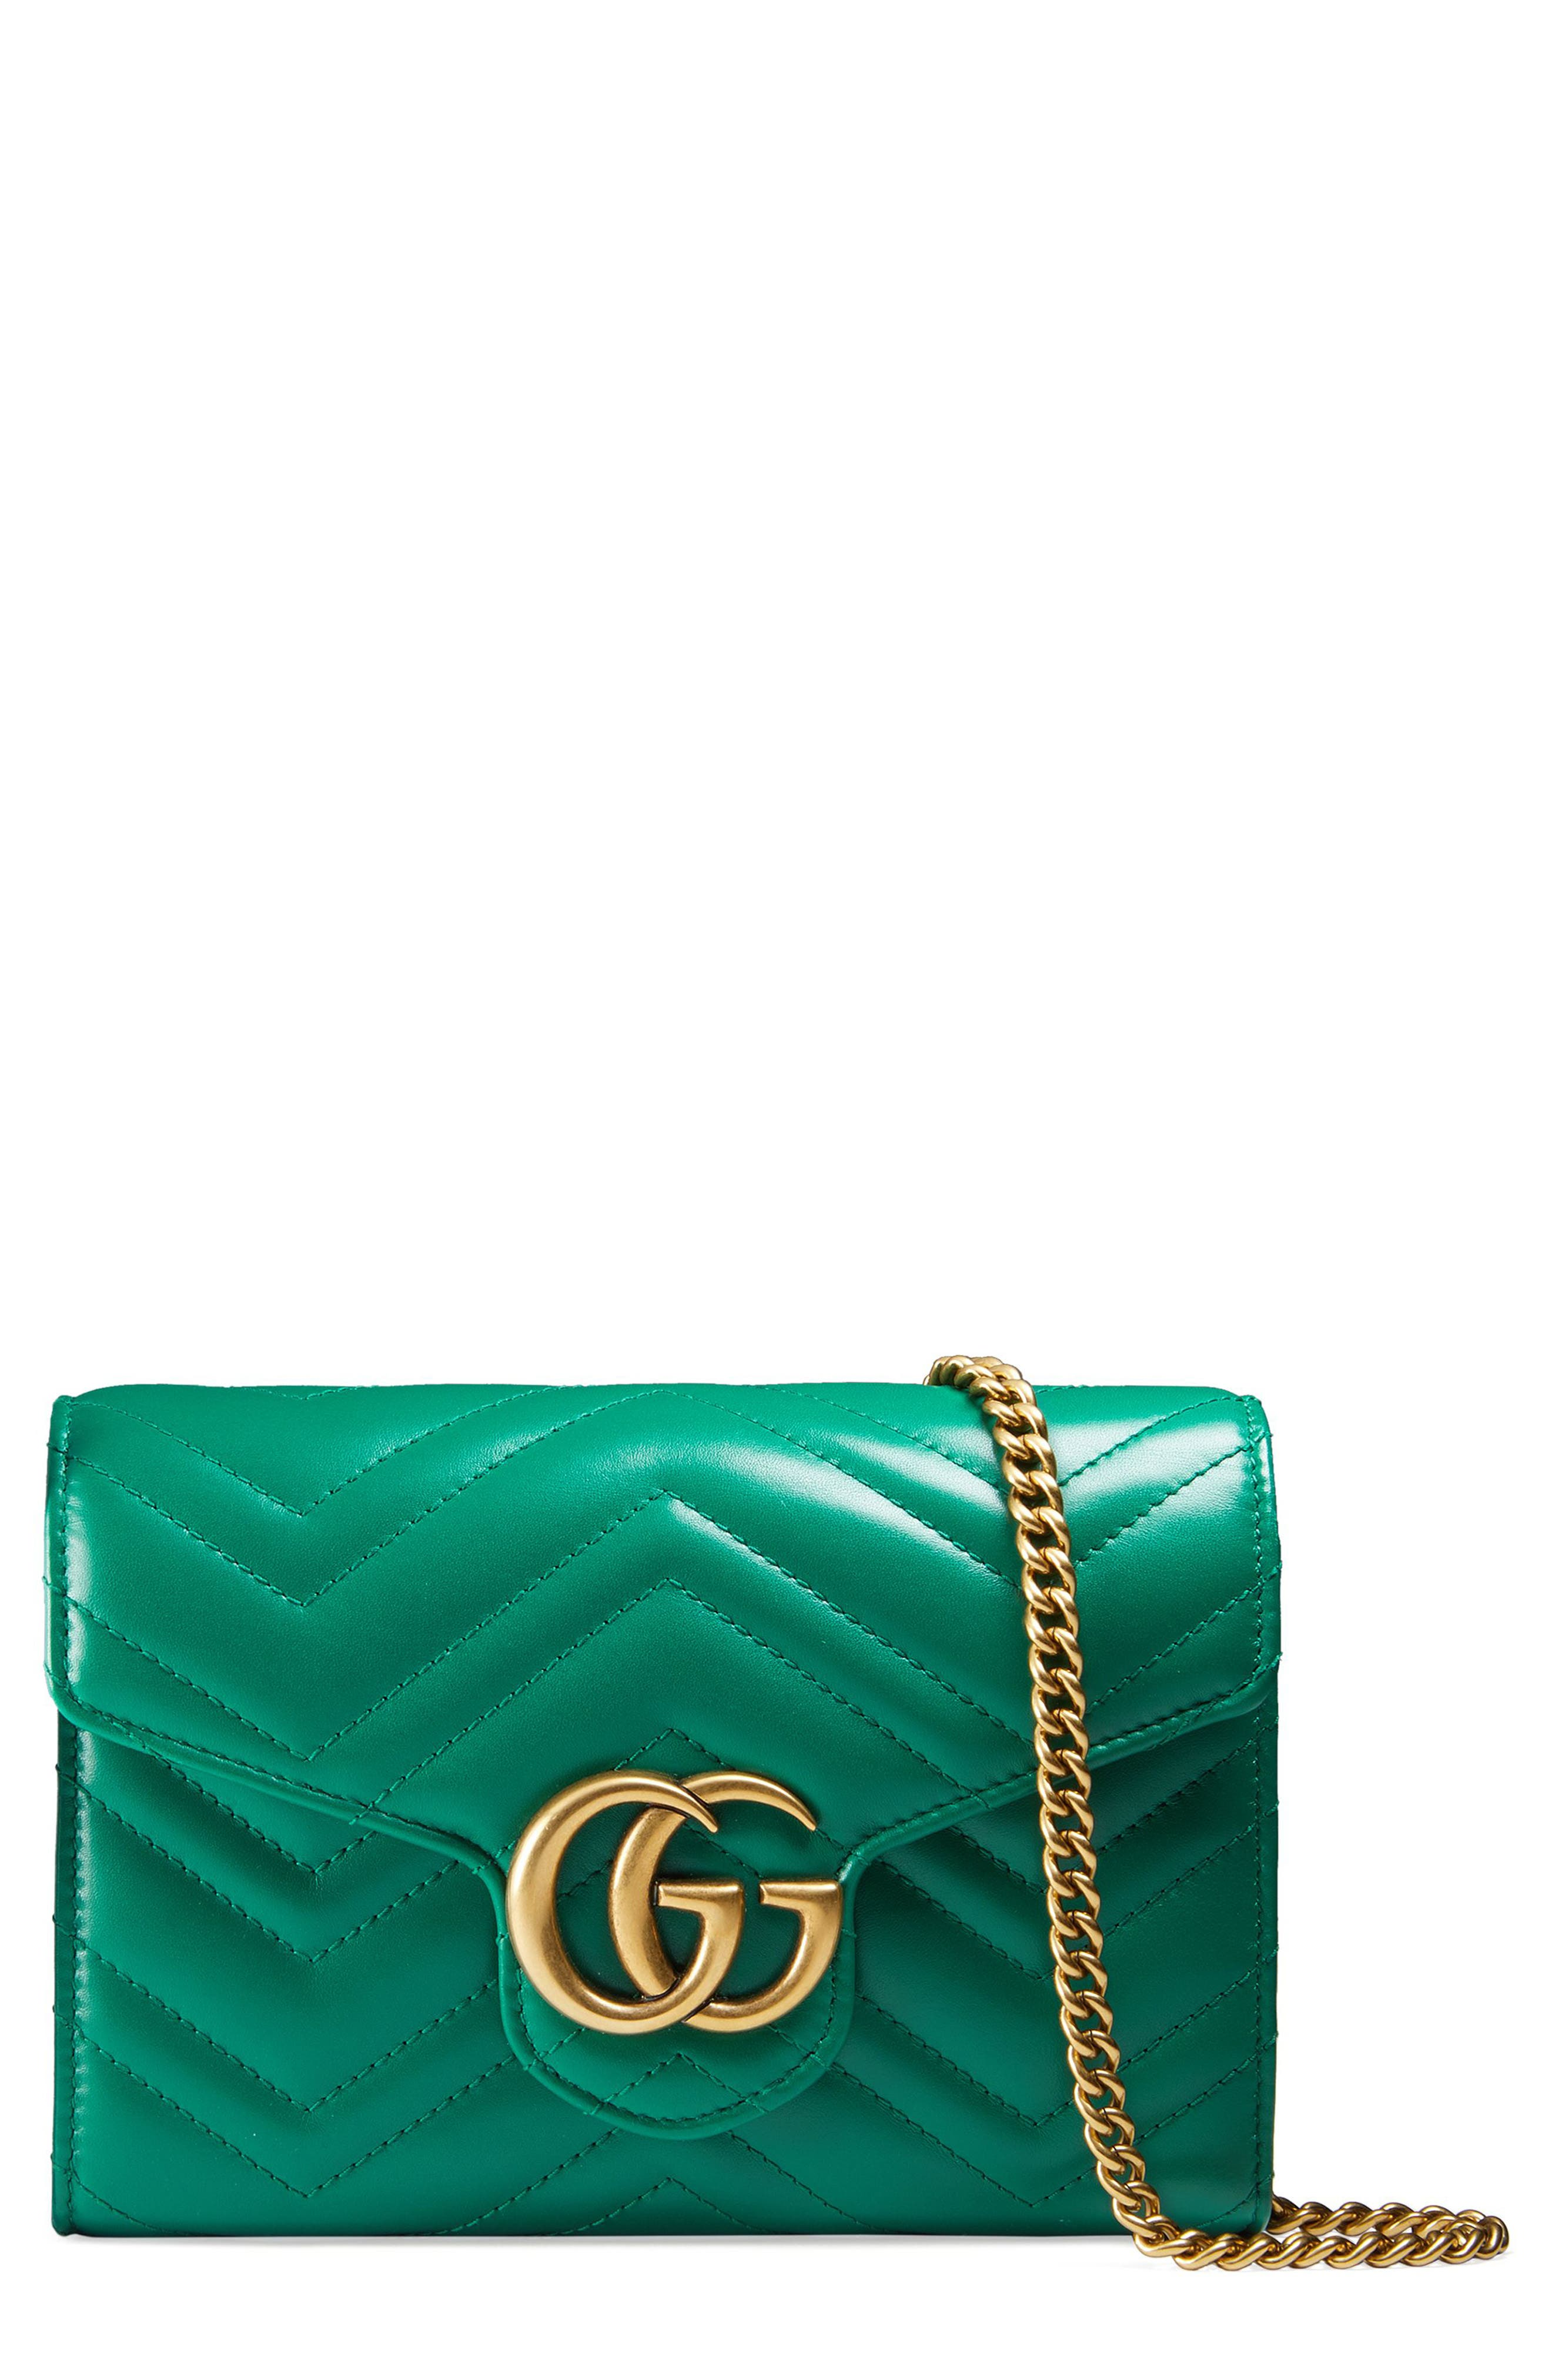 Main Image - Gucci GG Marmont Matelassé Leather Wallet on a Chain